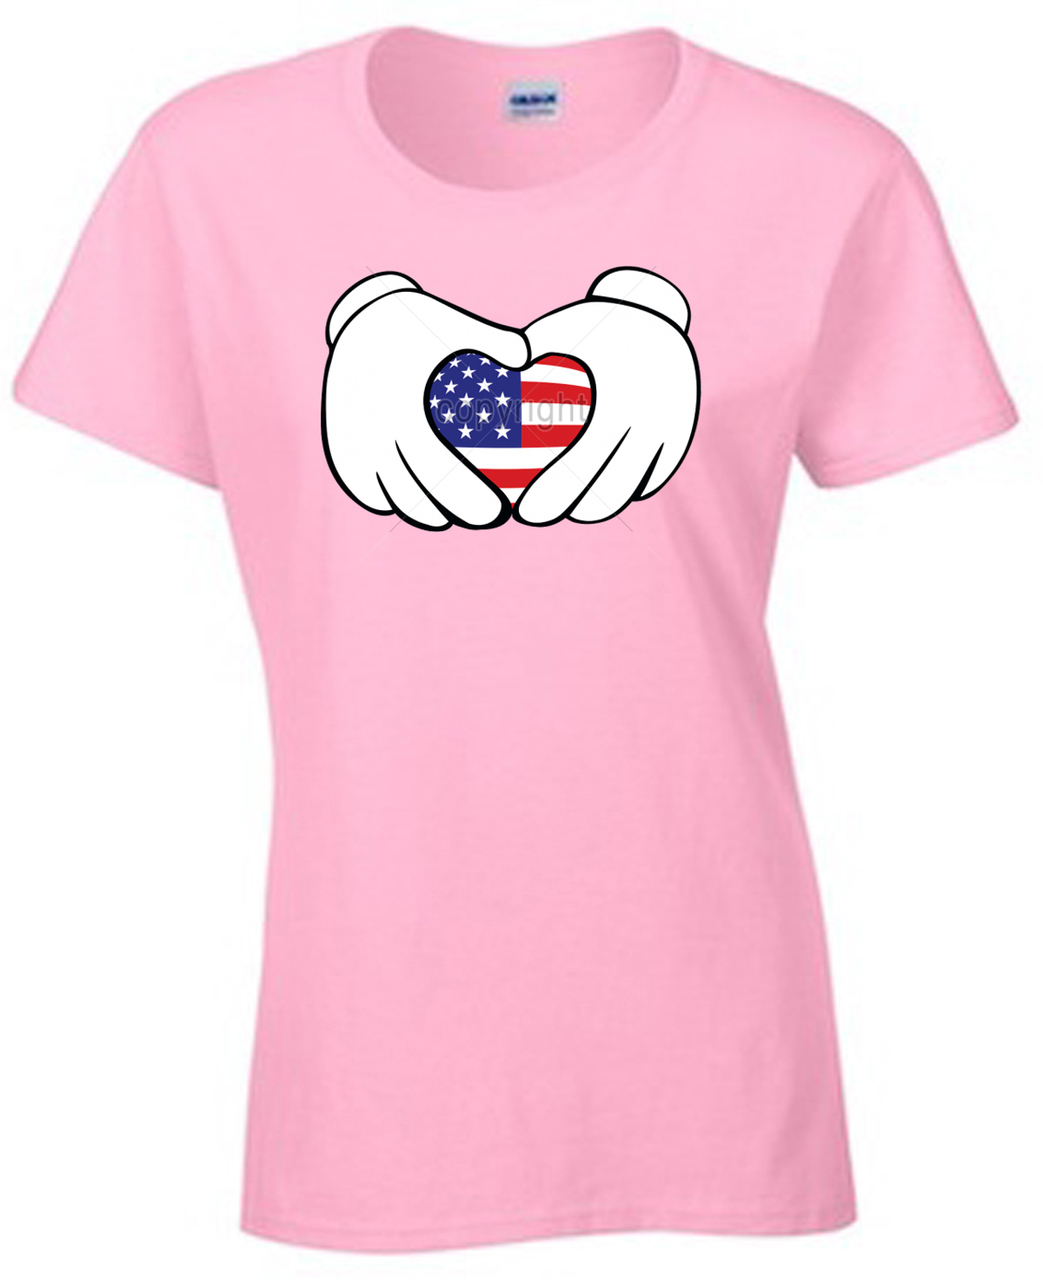 American Flag Cartoon Hands Heart Women's T-Shirt